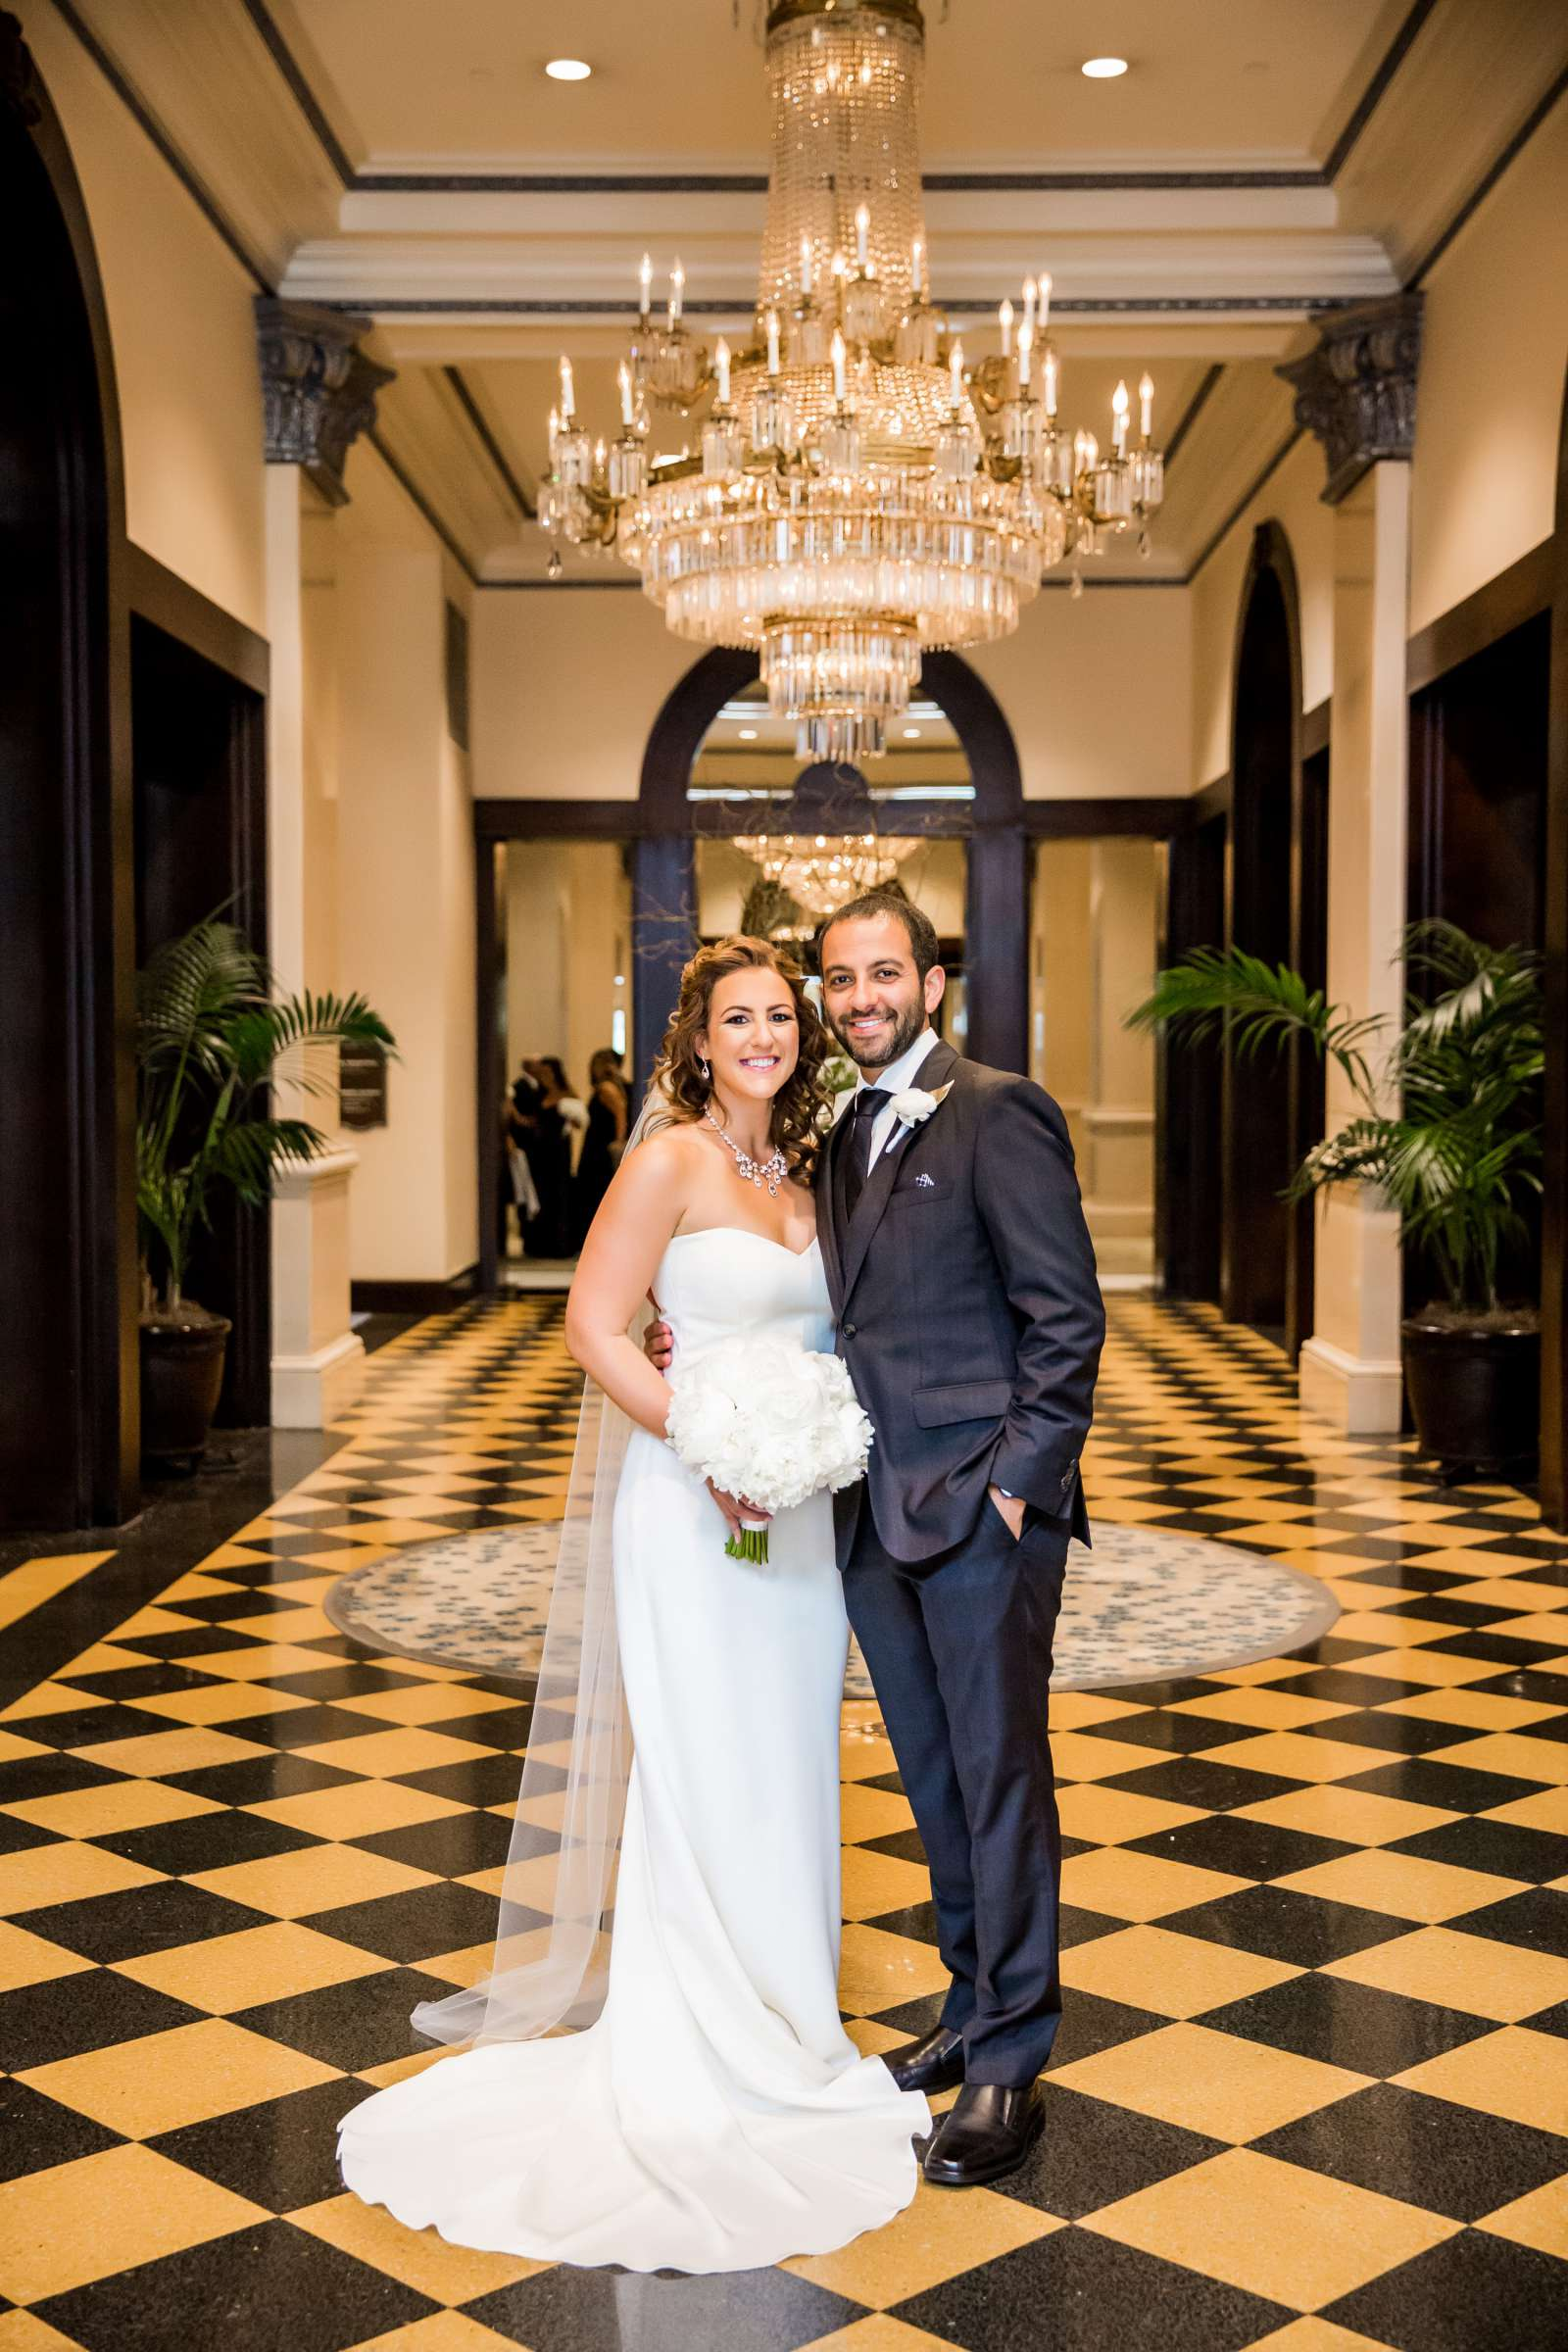 San Diego Museum of Art Wedding coordinated by First Comes Love Weddings & Events, Ruthie and Larry Wedding Photo #236739 by True Photography